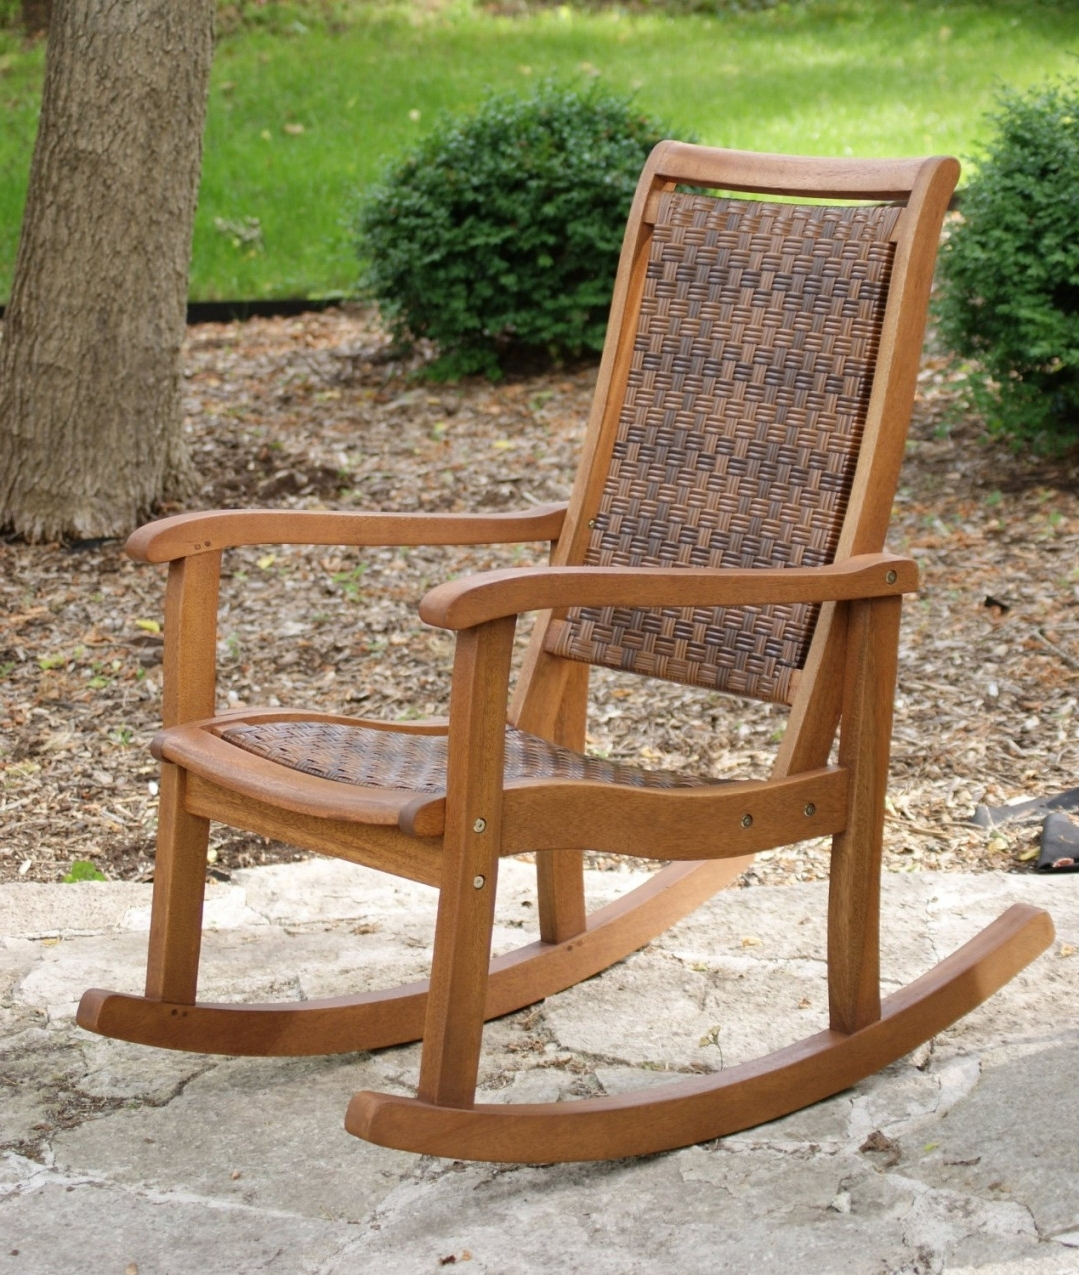 Great Patio Rocking Chairs : Spectacular And Sensational Patio Inside Recent Wooden Patio Rocking Chairs (View 7 of 20)